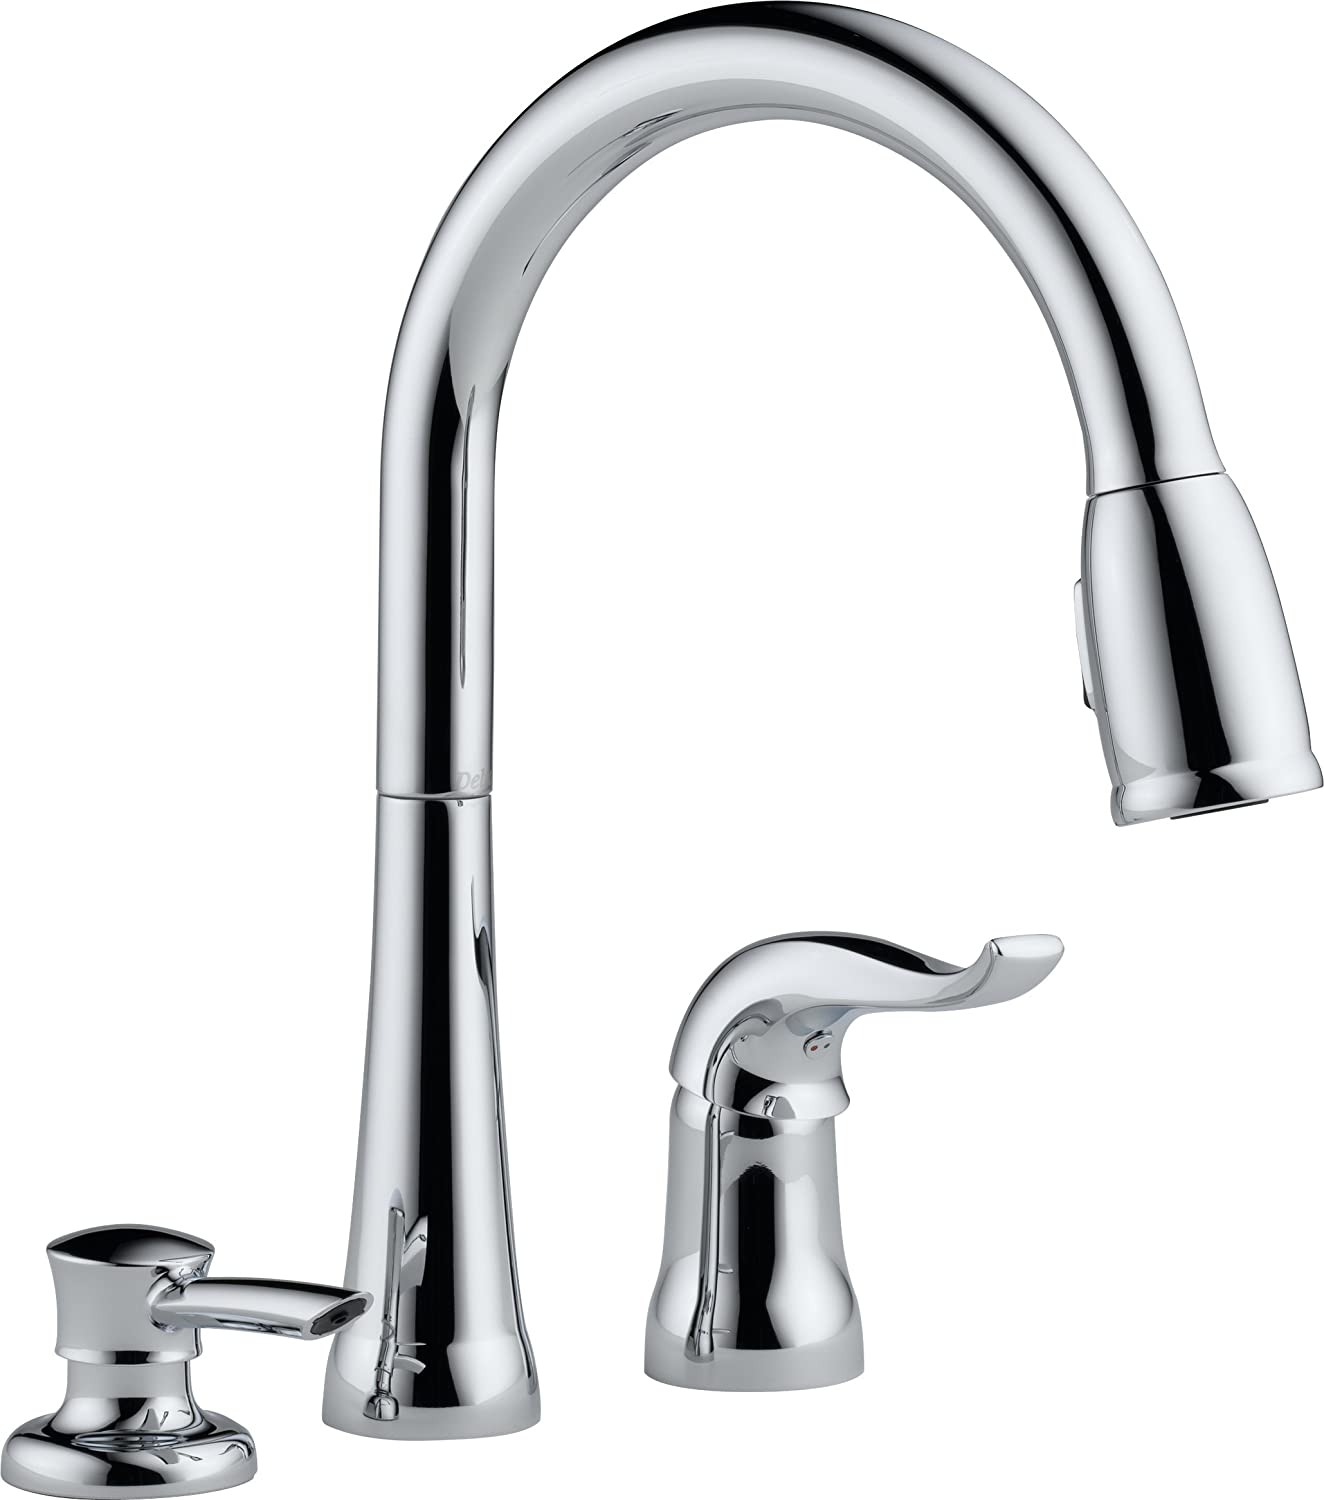 Delta Kate Single Handle Kitchen Pull Down Faucet With Magnetic Docking  Spray Head, Chrome 16970 SD DST   Touch On Kitchen Sink Faucets   Amazon.com